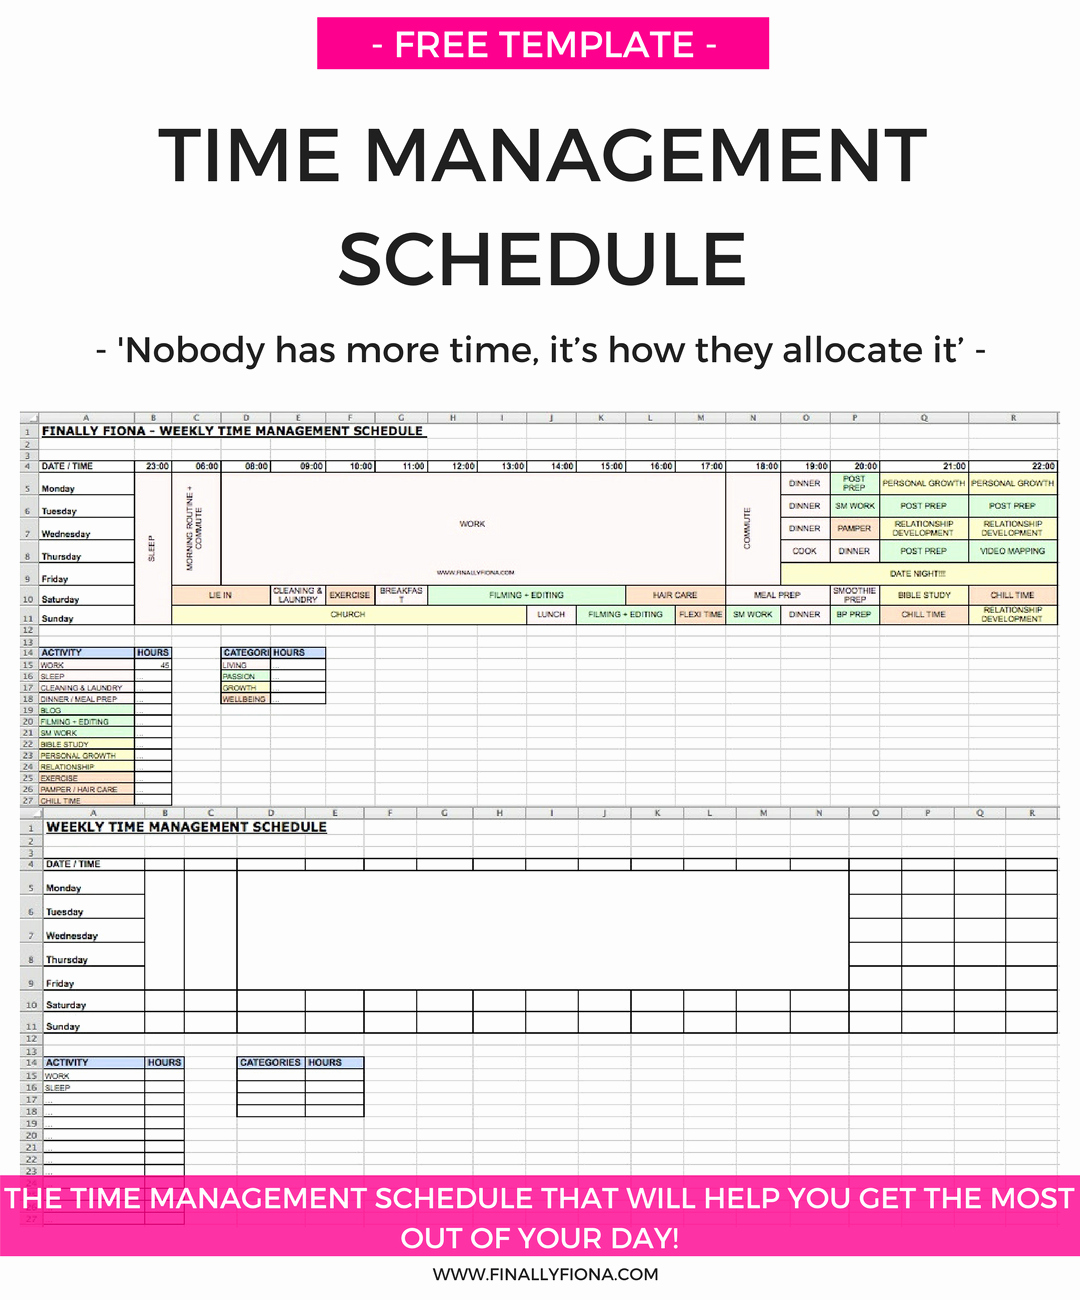 Time Management Schedule Template Lovely My Time Management Schedule & How I Get the Most Out